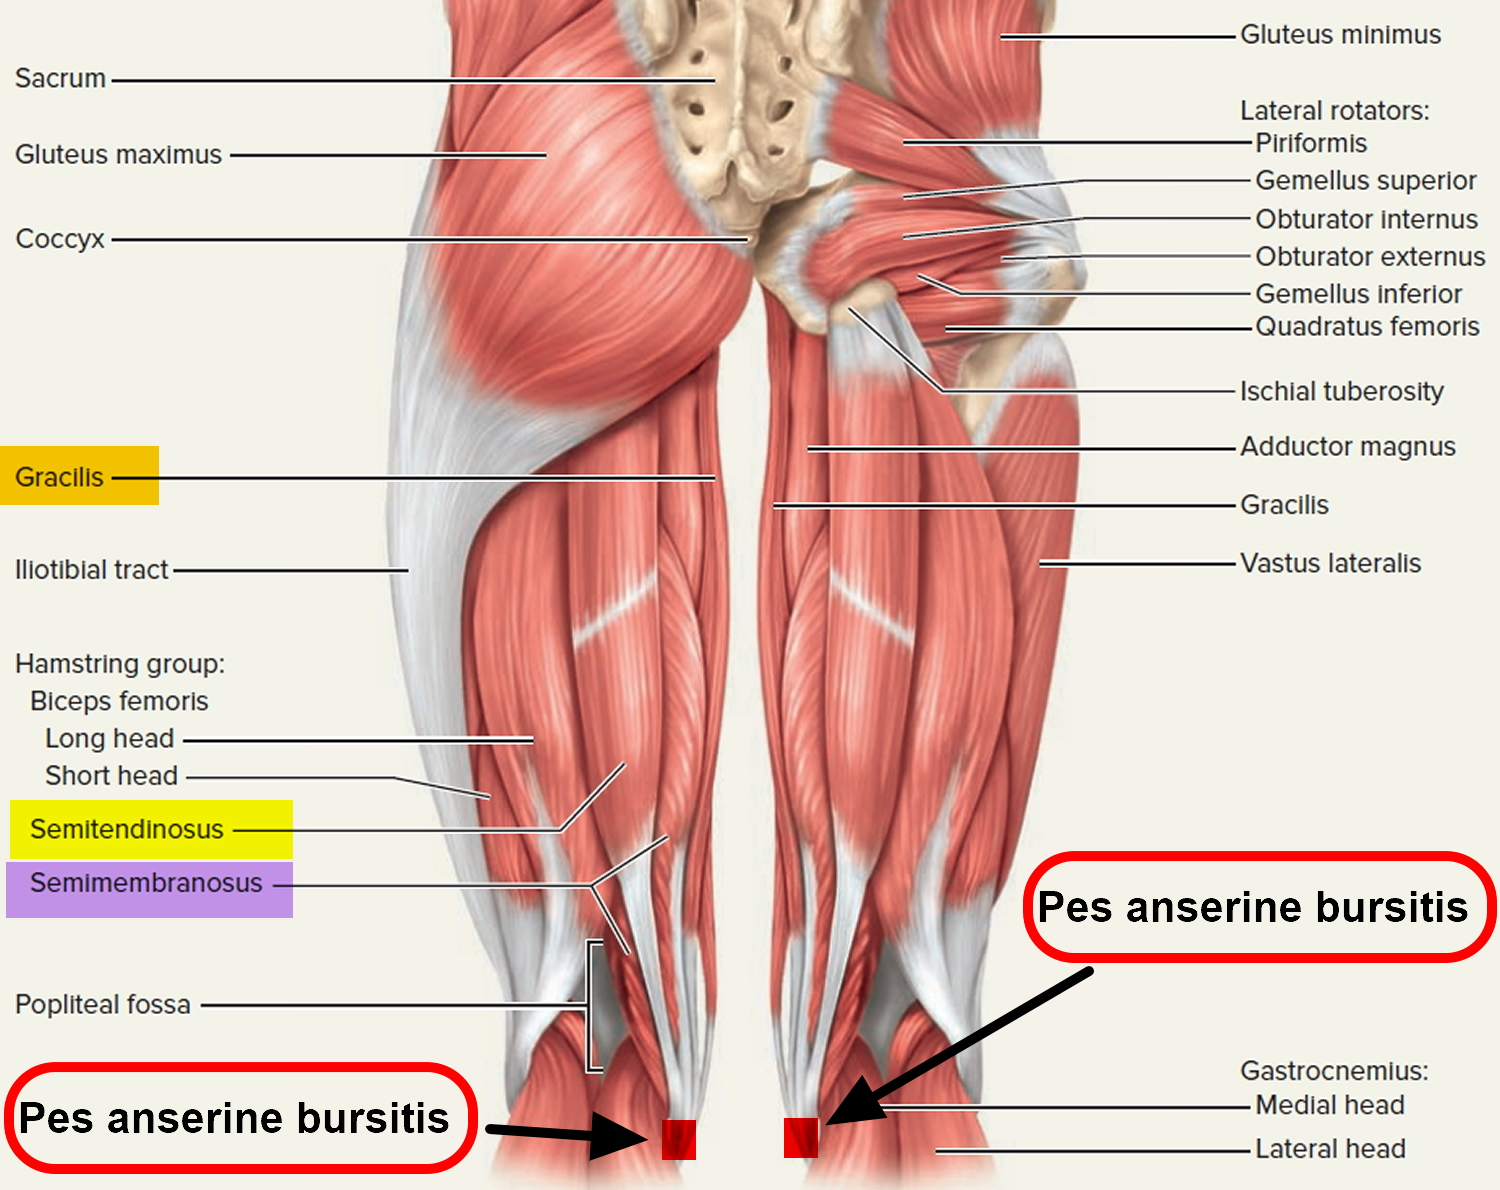 Bursitis - Hip, Trochanteric, Knee, Shoulder, Elbow - Causes & Treatment